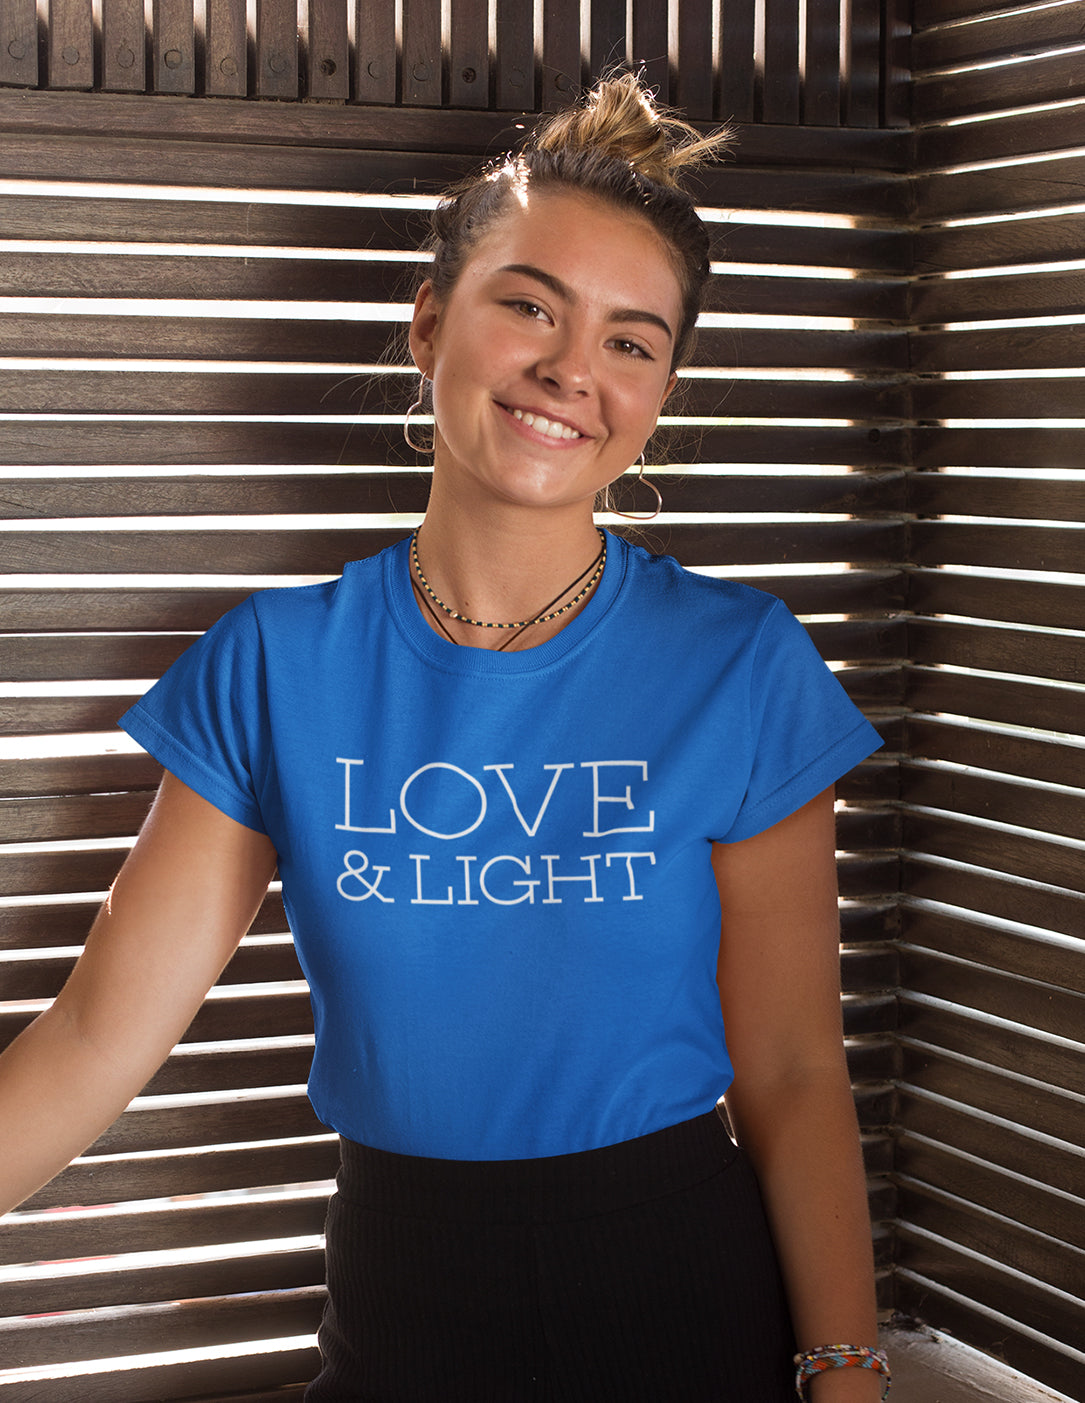 Love & Light - Women's T-Shirt - Sapphire Blue - Love Tee